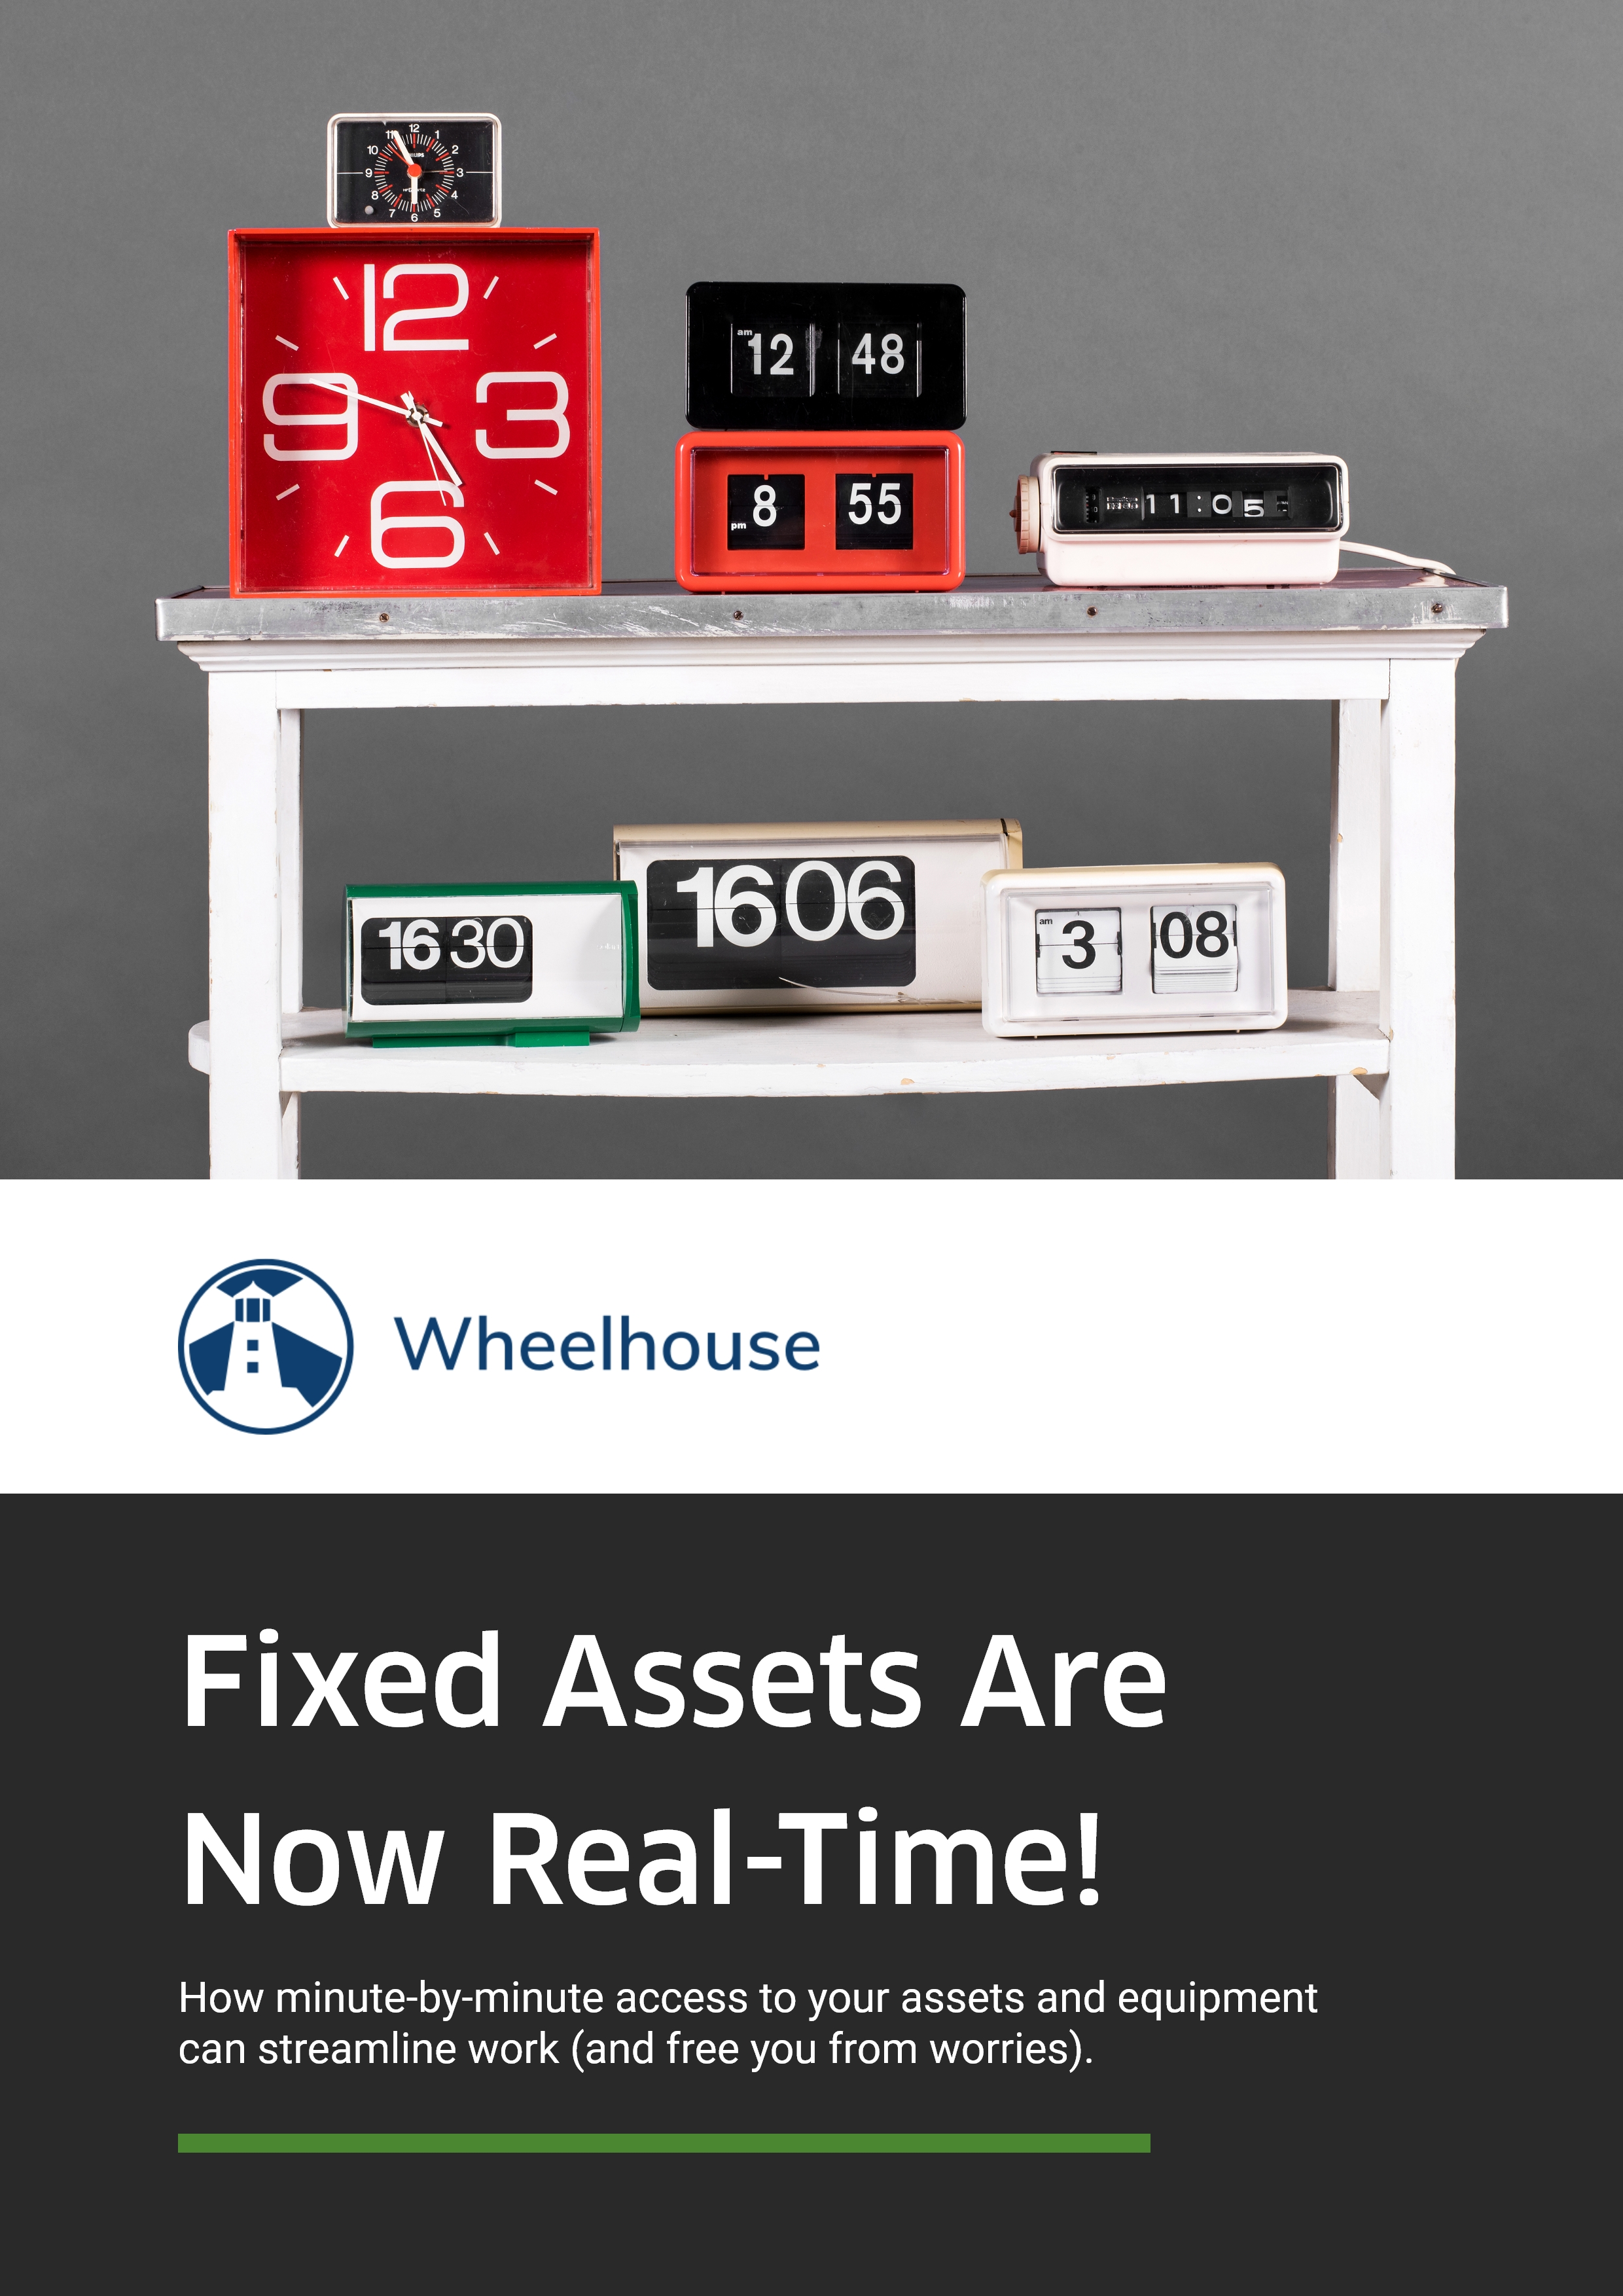 fixed-assets-are-now-real-time